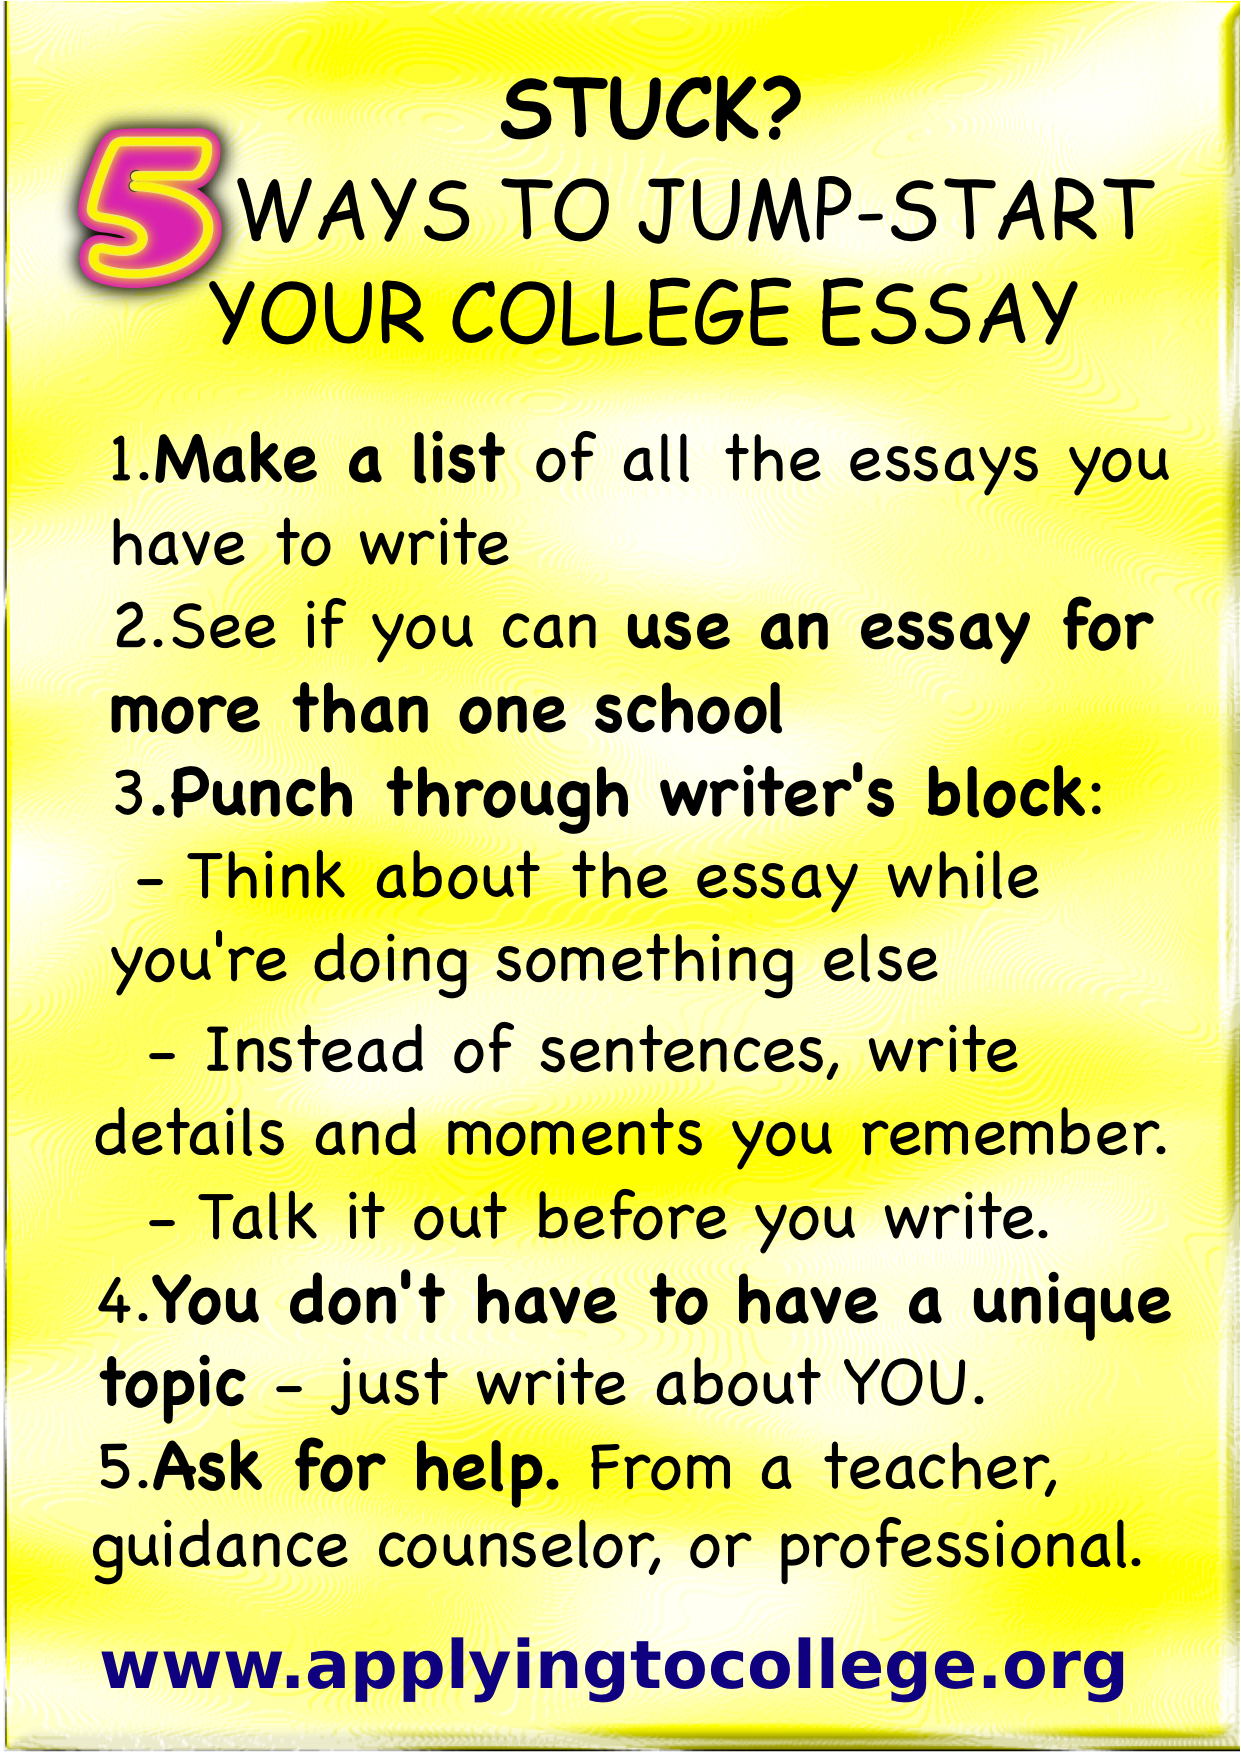 What are three ways to begin an essay